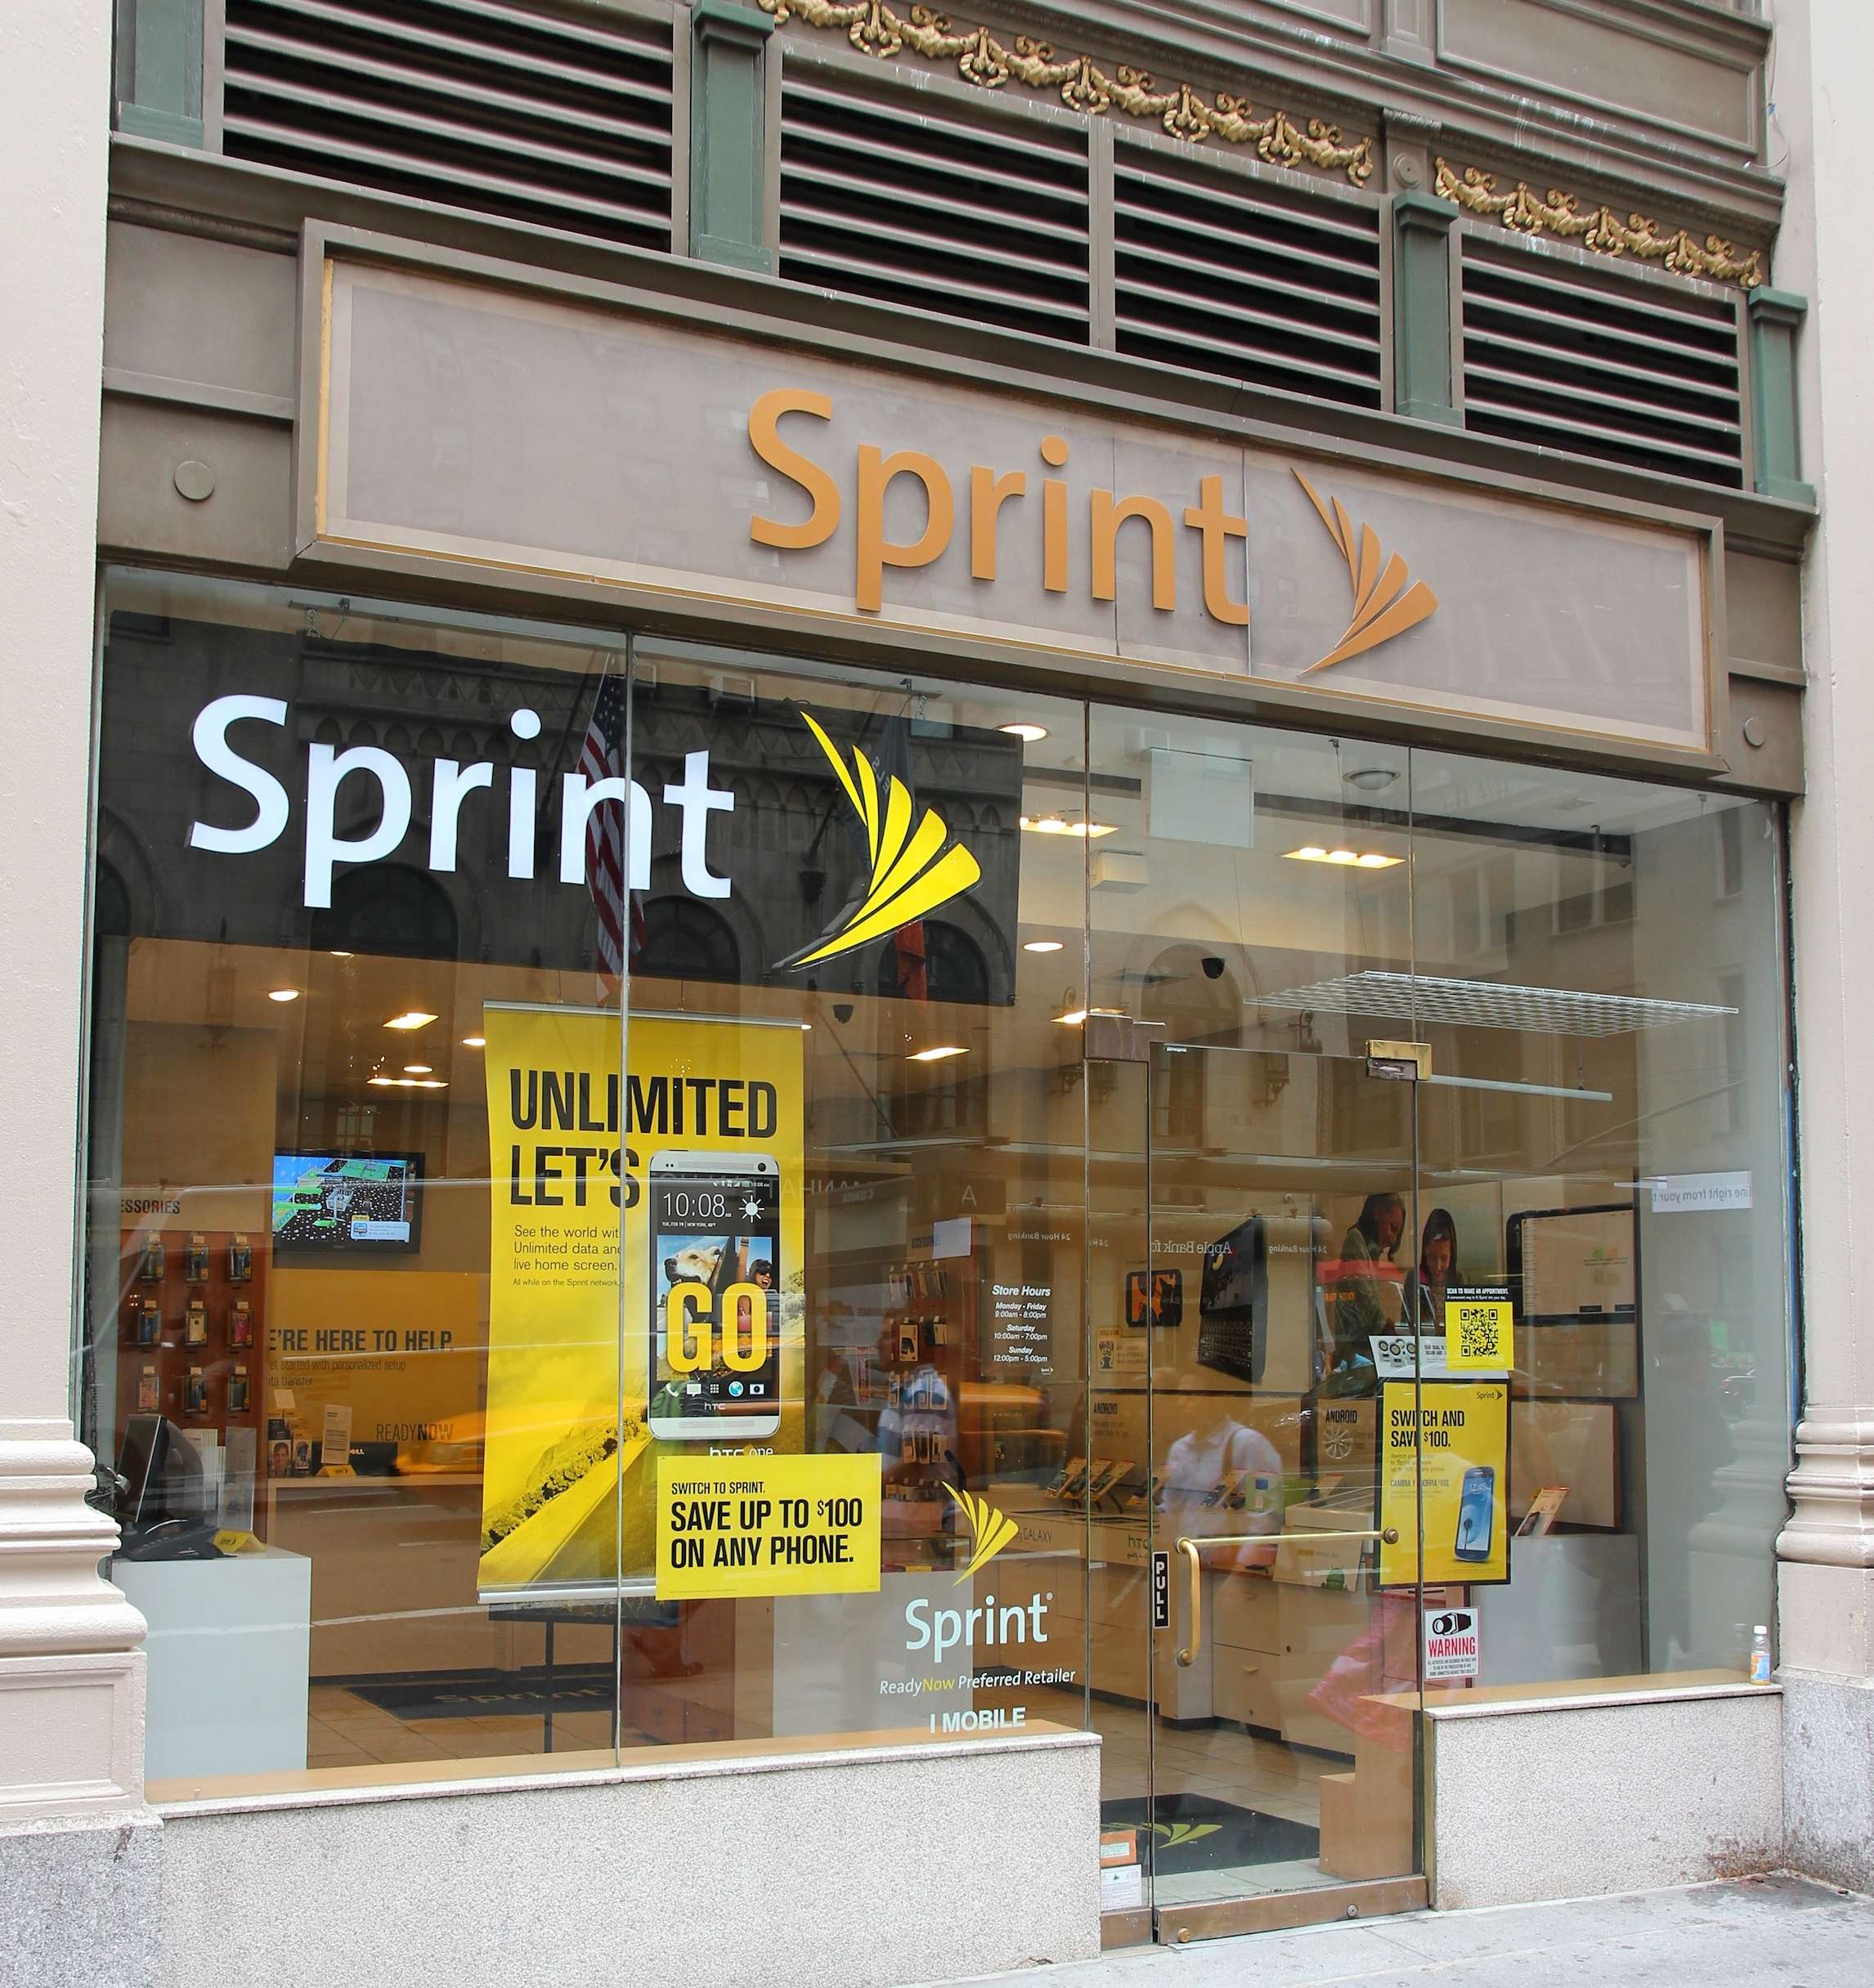 Sprint sues AT&T, claims '5G E' branding is false advertising